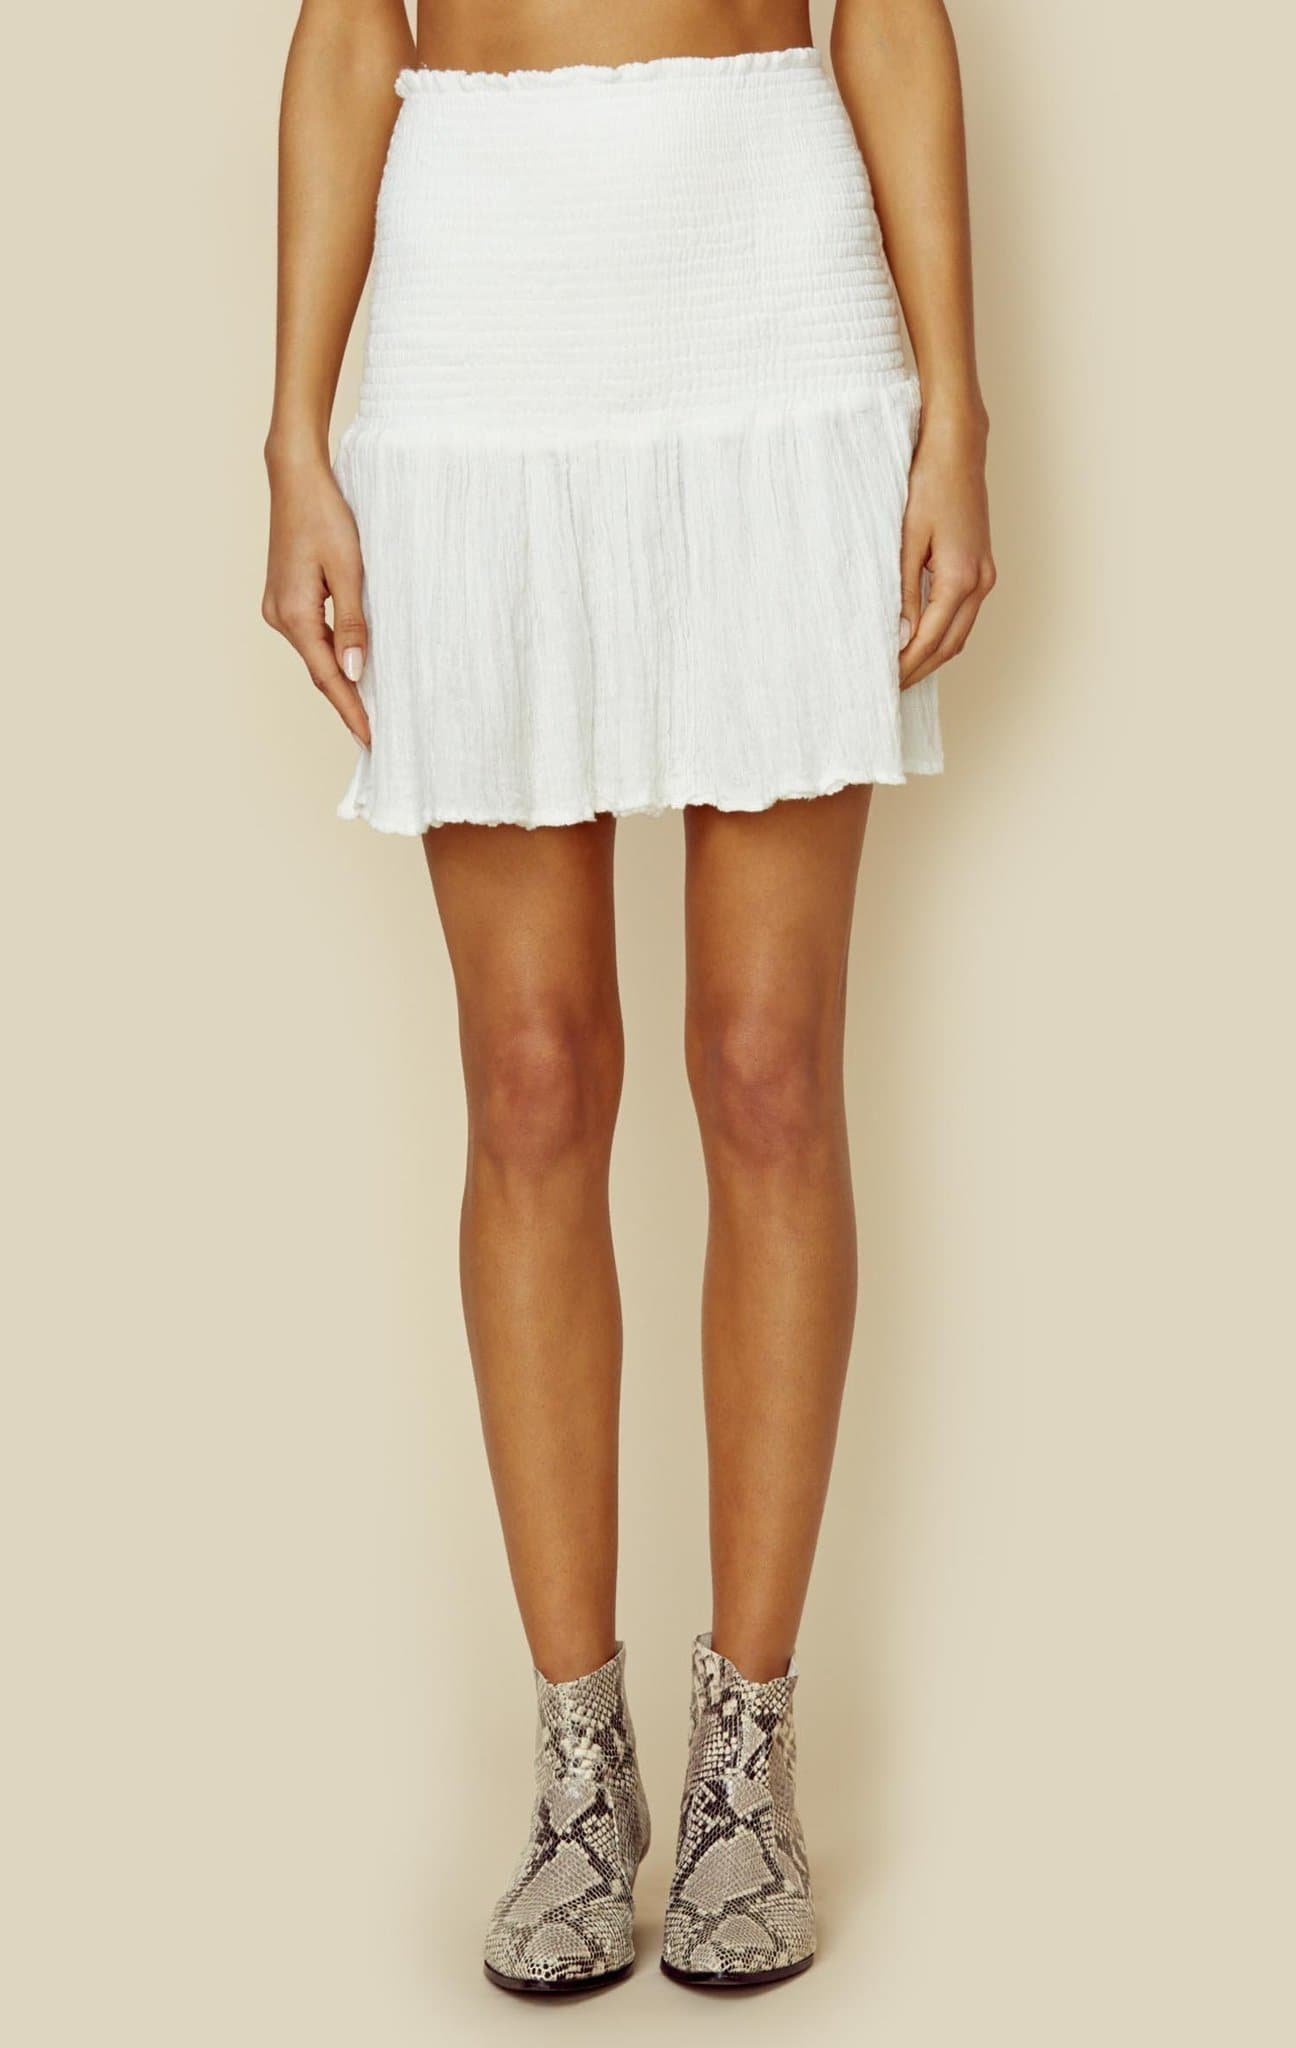 JENS PIRATE BOOTY COUNTER CULTURE SKIRT - WHITE